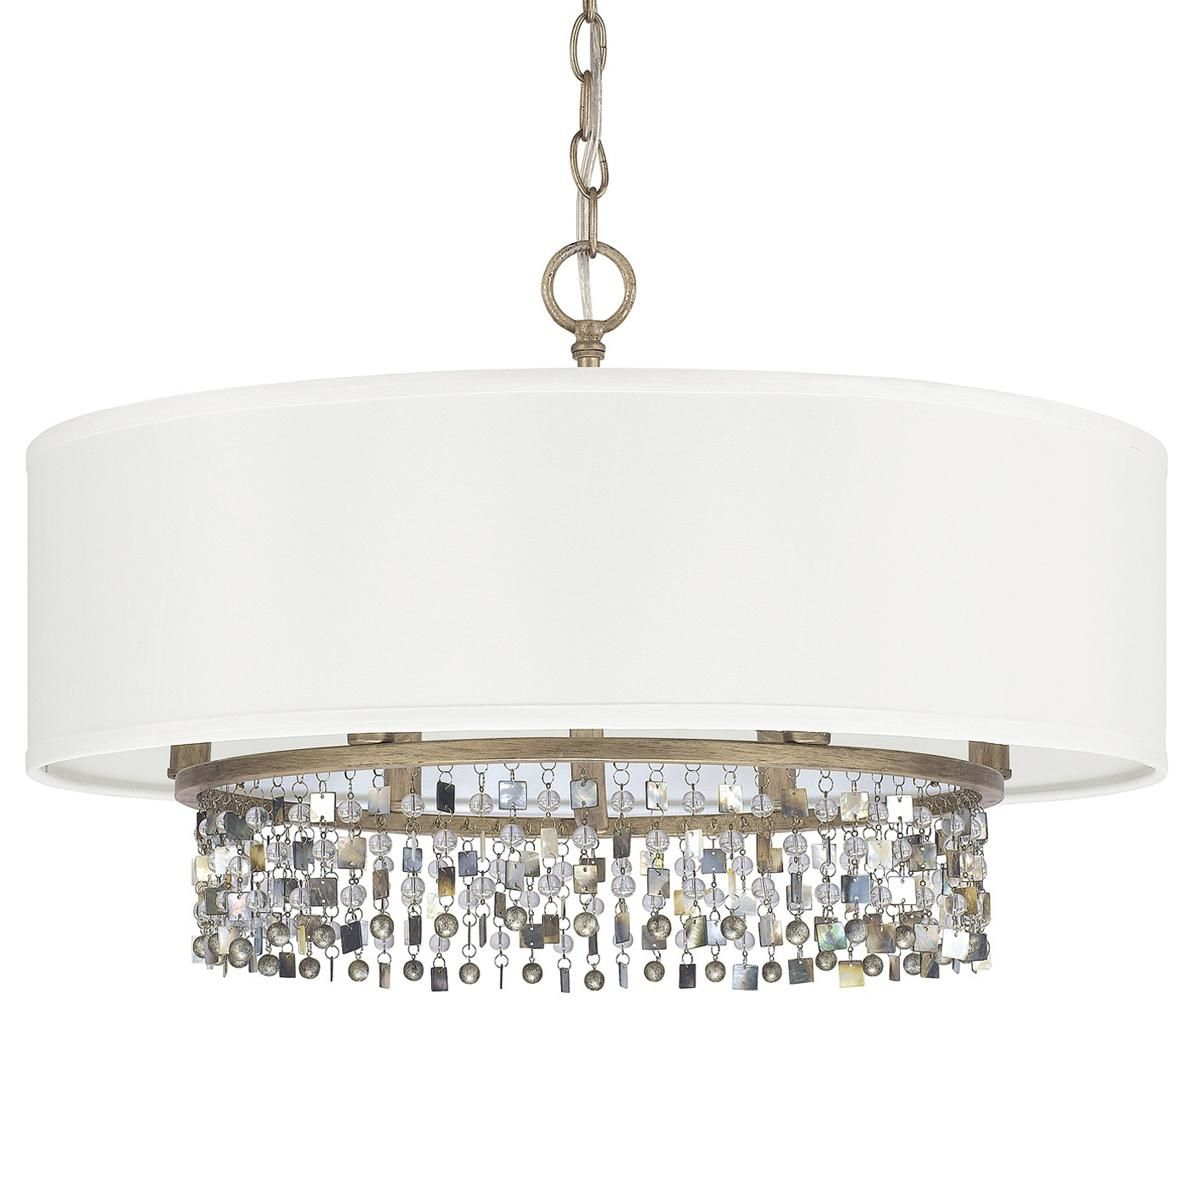 Shell And Crystal Drum Shade Chandelier Drum Shade Chandelier Chandelier Shades Transitional Pendant Lighting